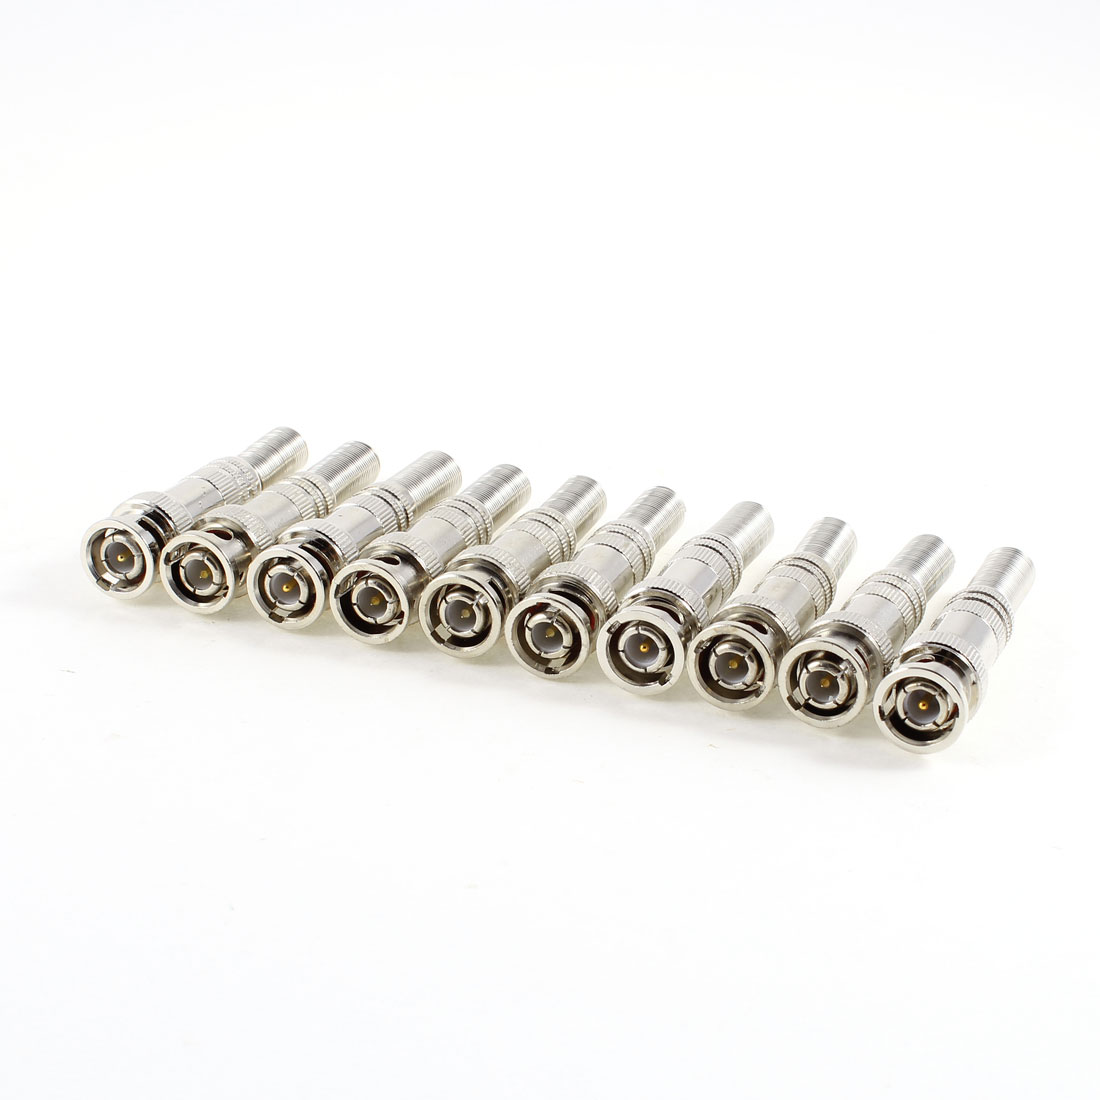 10 Pcs Twist Spring BNC Male Connector for CCTV Camera Coaxial Cable